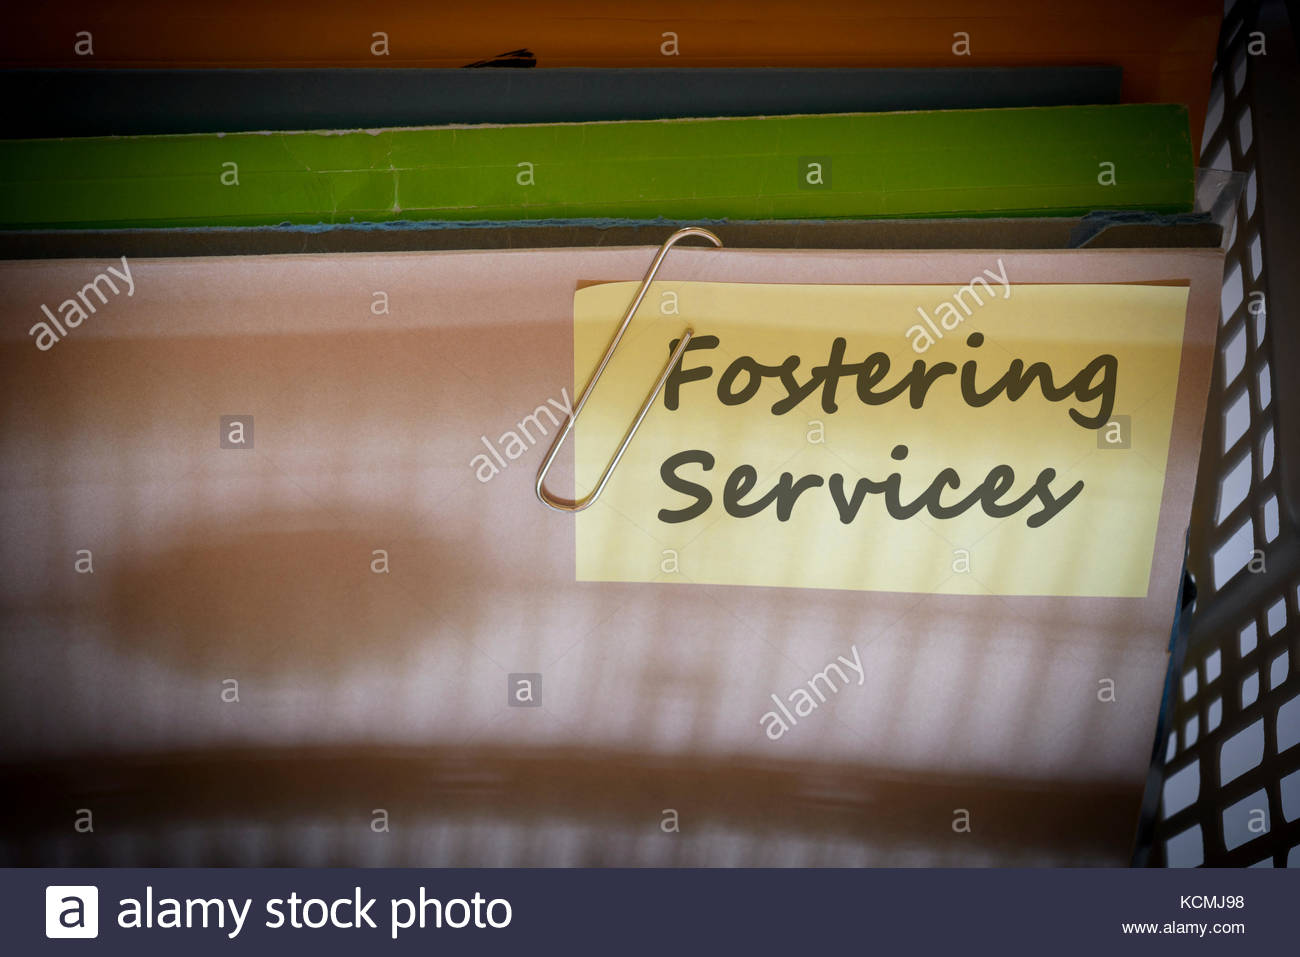 Fostering Services written on document folder, Dorset, England. - Stock Image